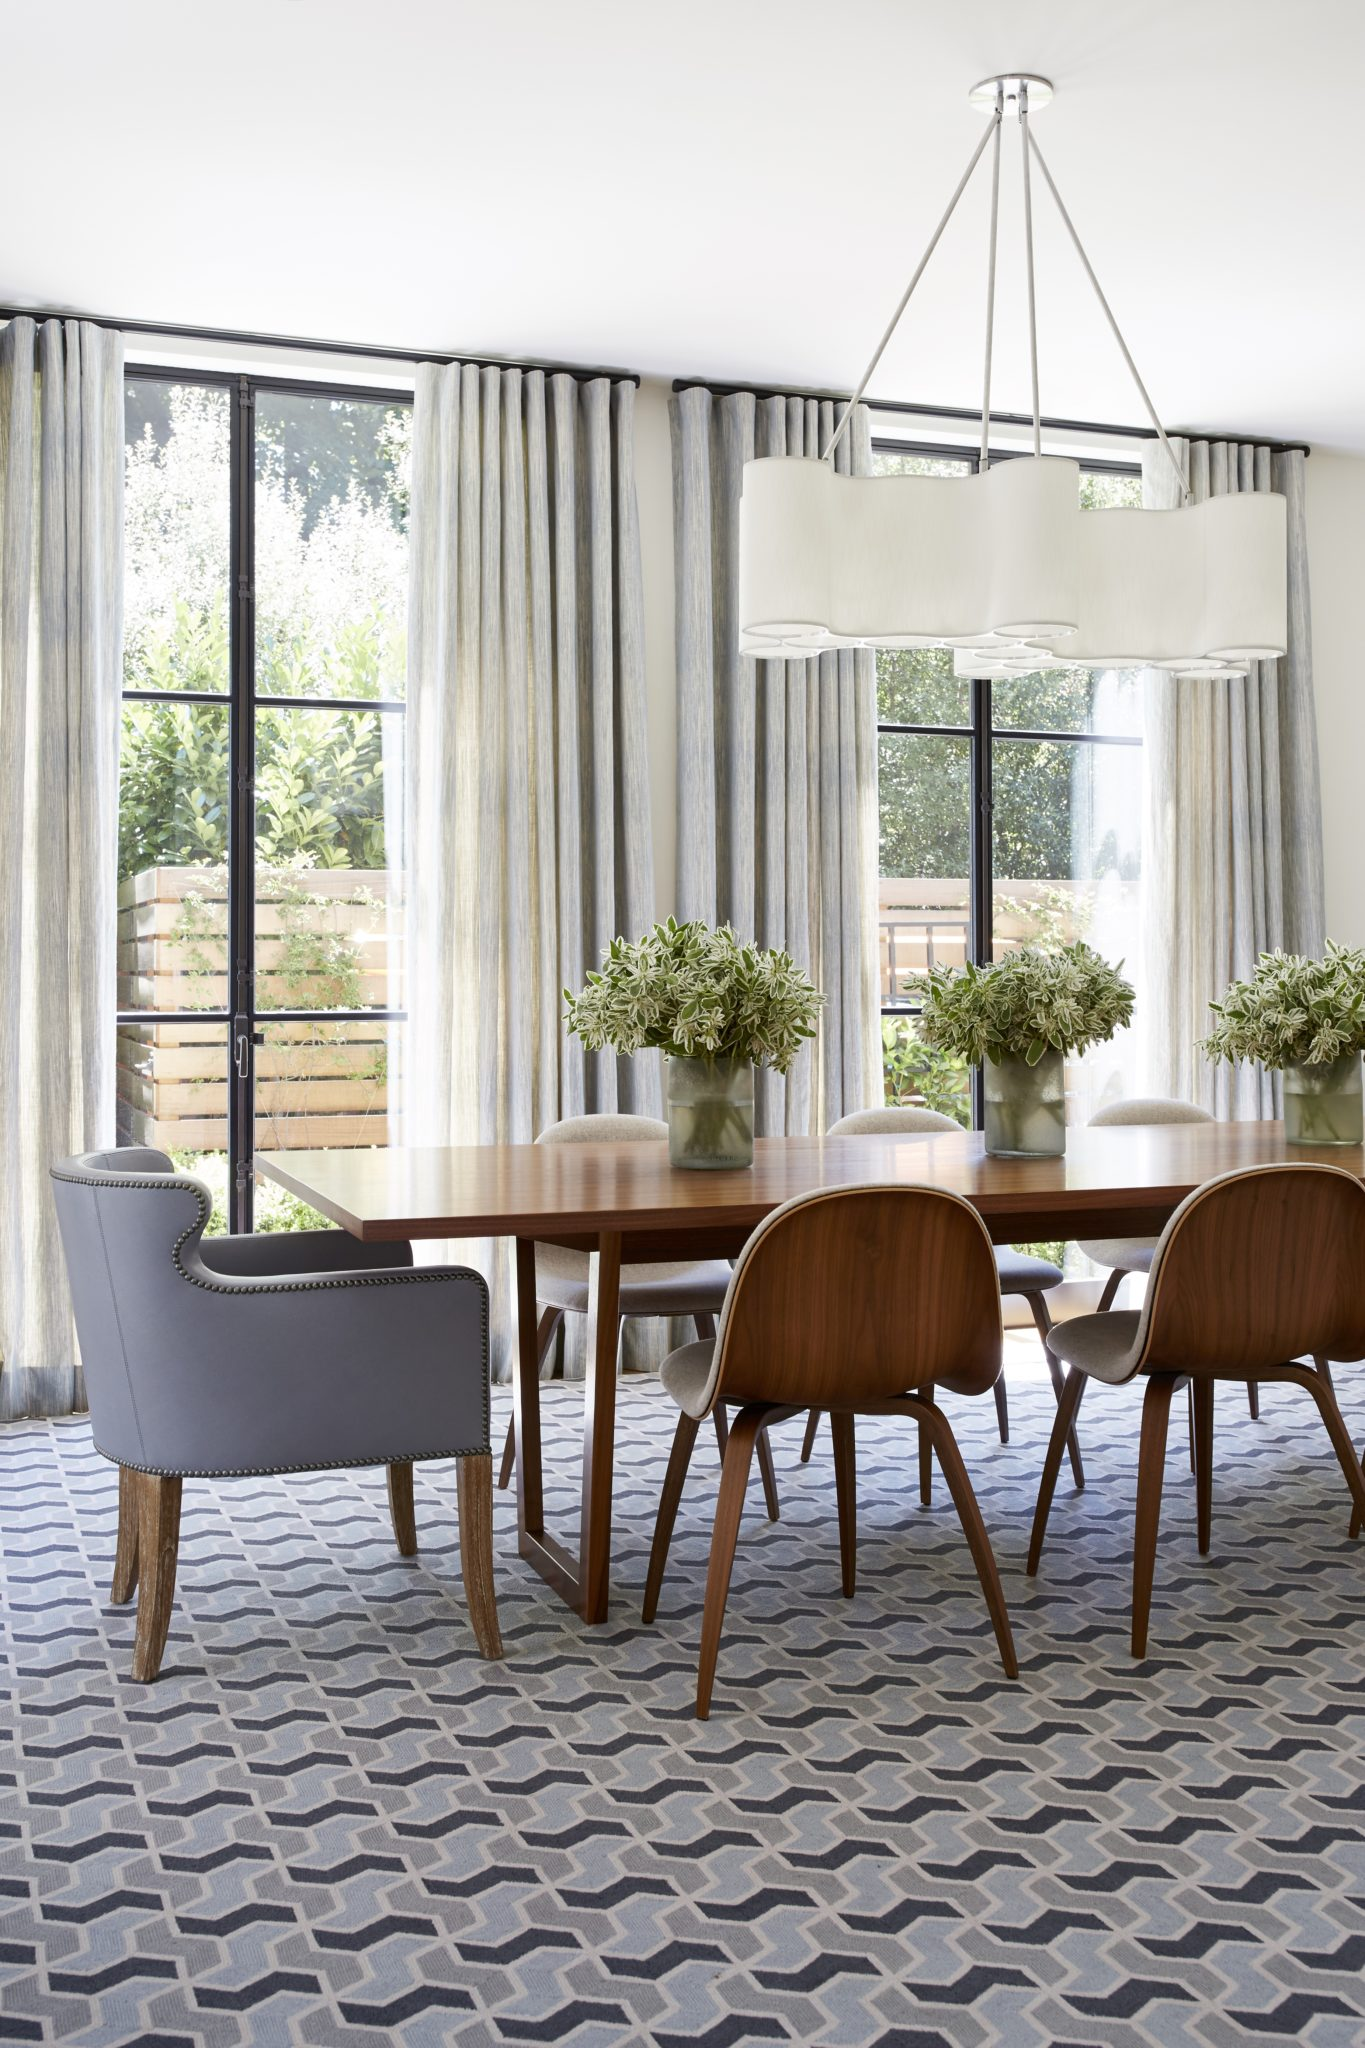 Marin County family home - dining room with a custom Tai Ping rug by Kelly Hohla Interiors